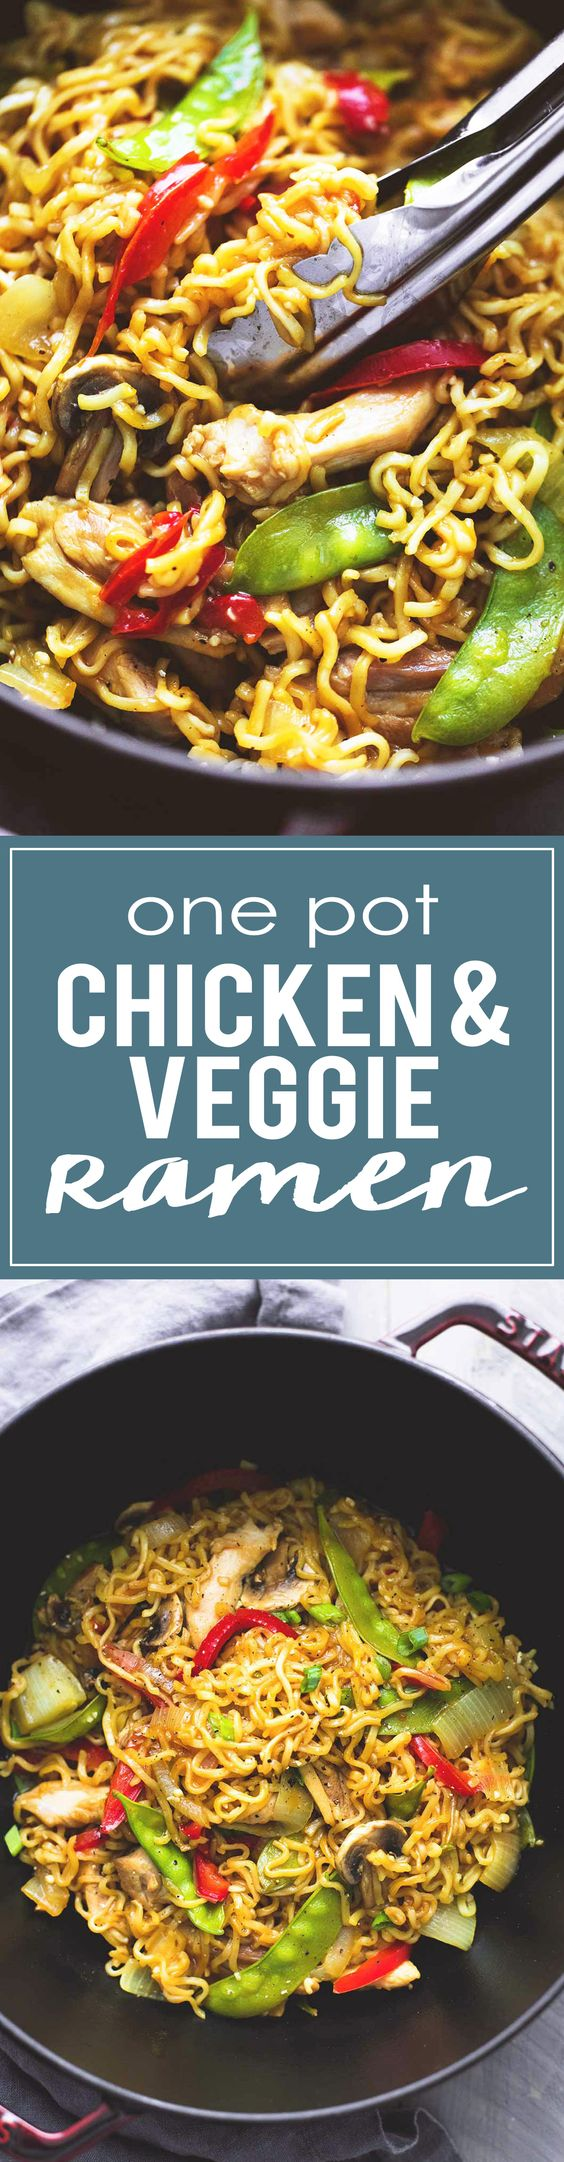 Easy One Pot Chicken & Veggie Ramen is ready in less than 30 minutes and customizable with any of your favorite veggies. | lecremedelacrumb.com